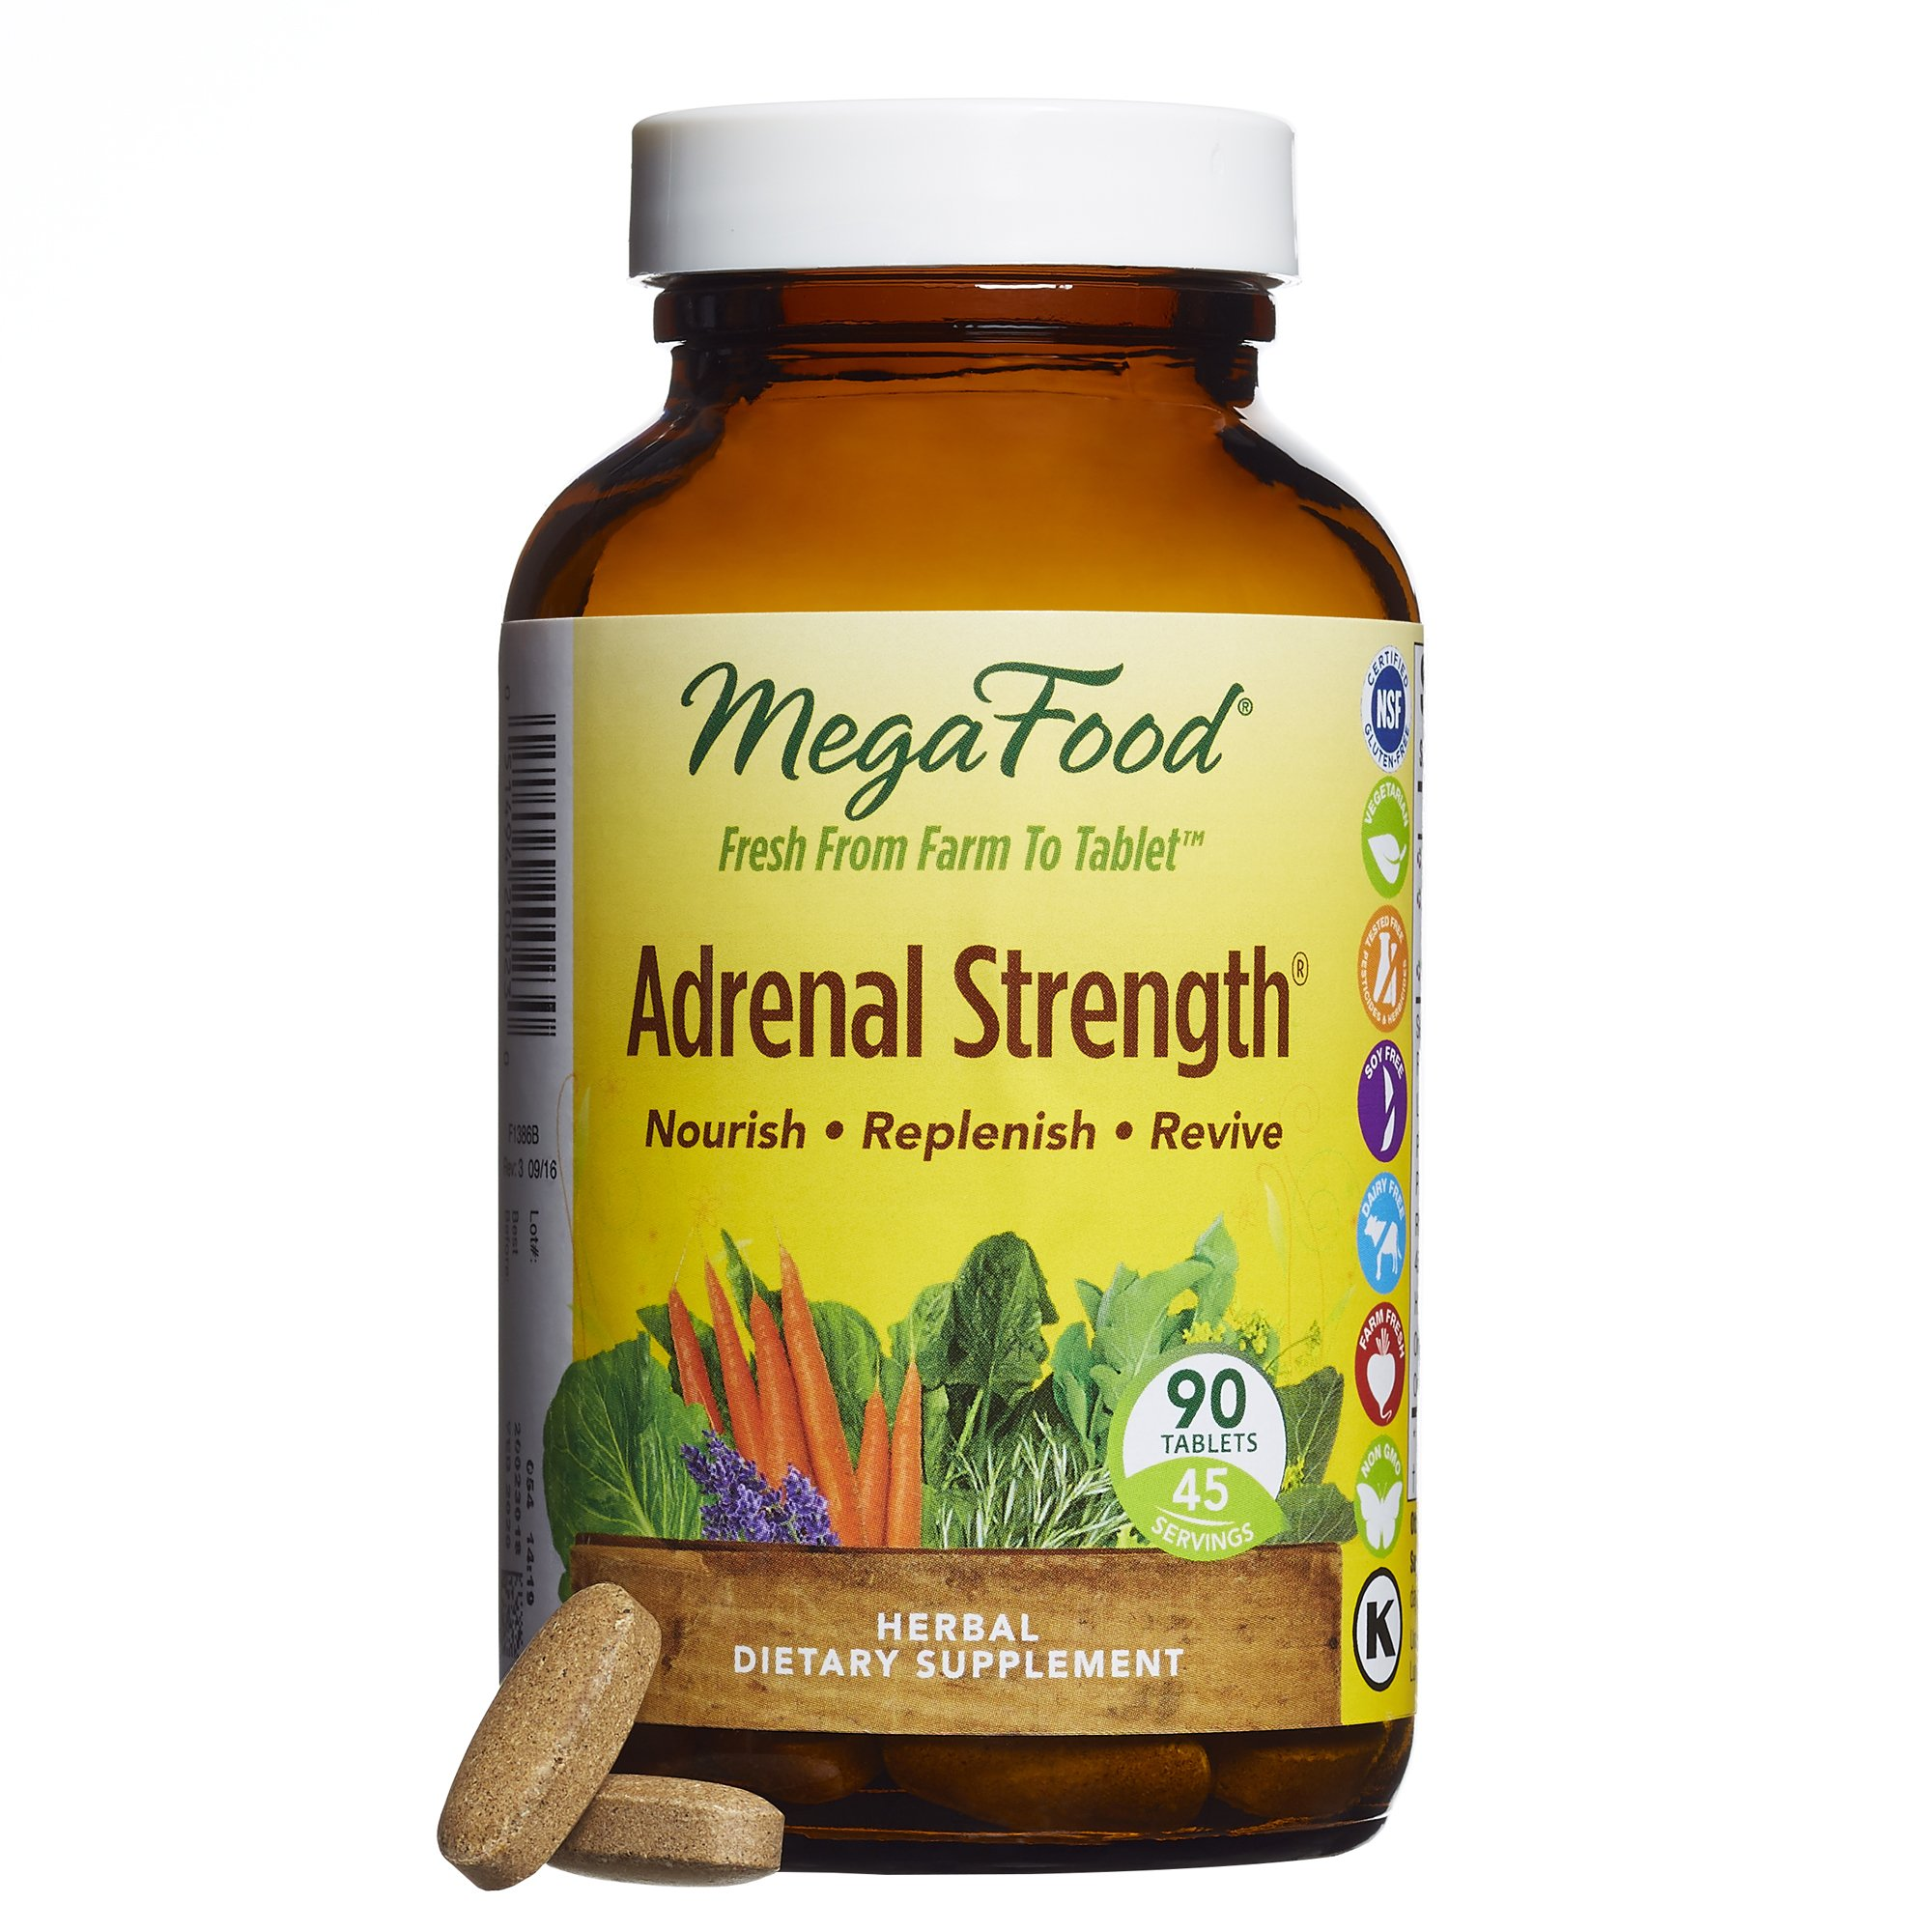 MegaFood - Adrenal Strength, Promotes Healthy Endocrine Function to Support the Adrenals, 90 Tablets (FFP) by MegaFood